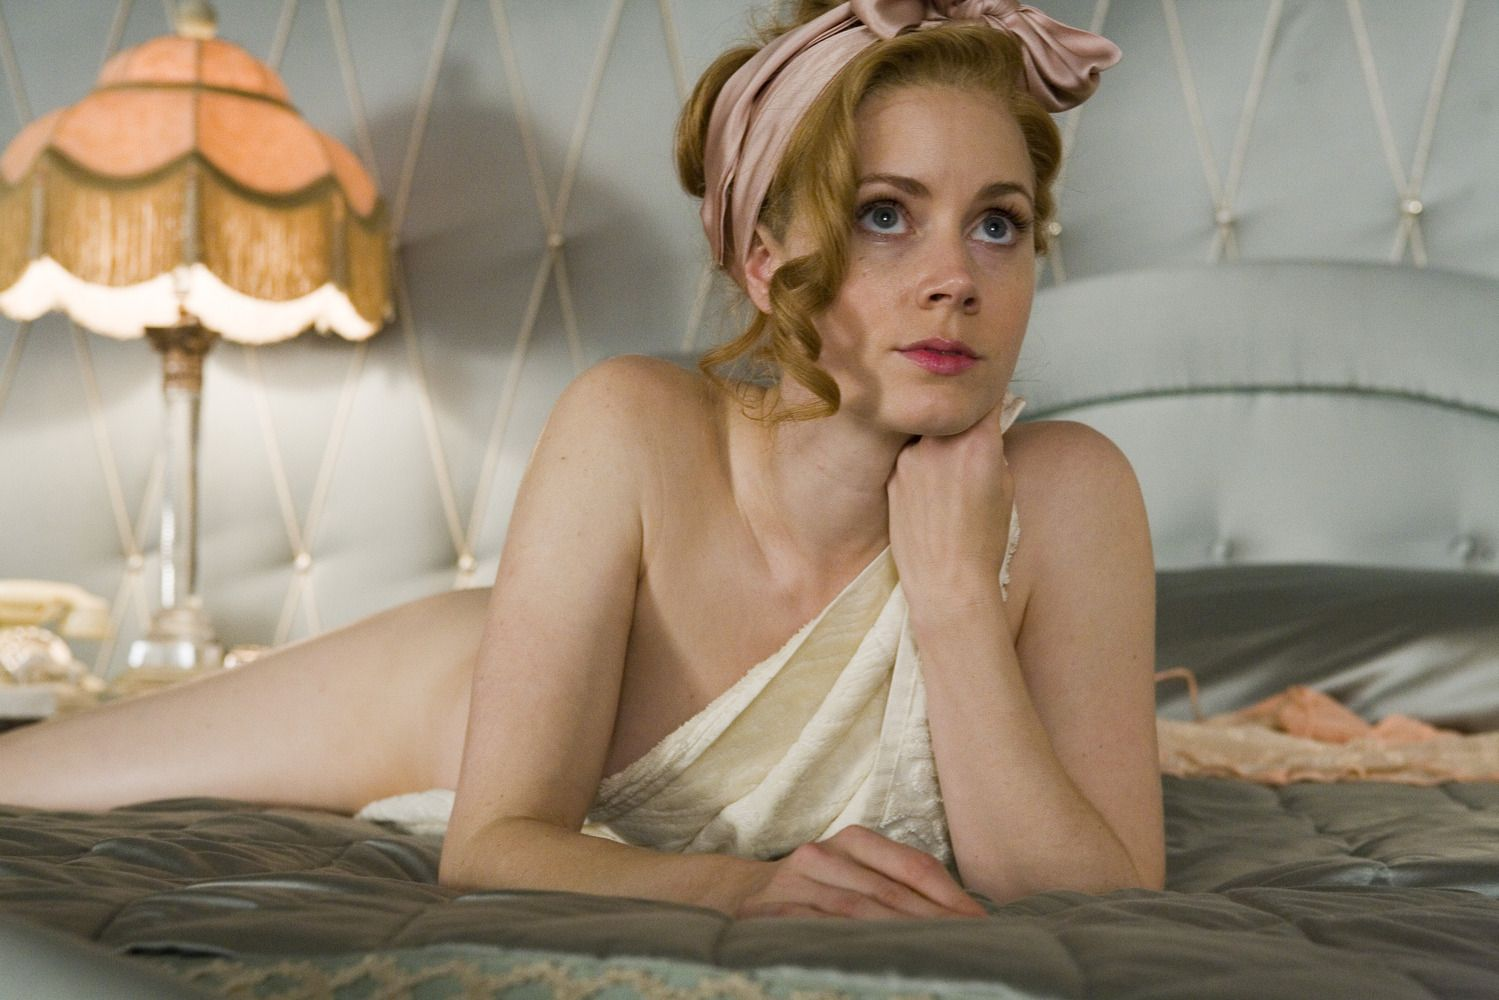 Amy Adams Nude Scene 195 best amy adams images | amy adams, amy, actress amy adams